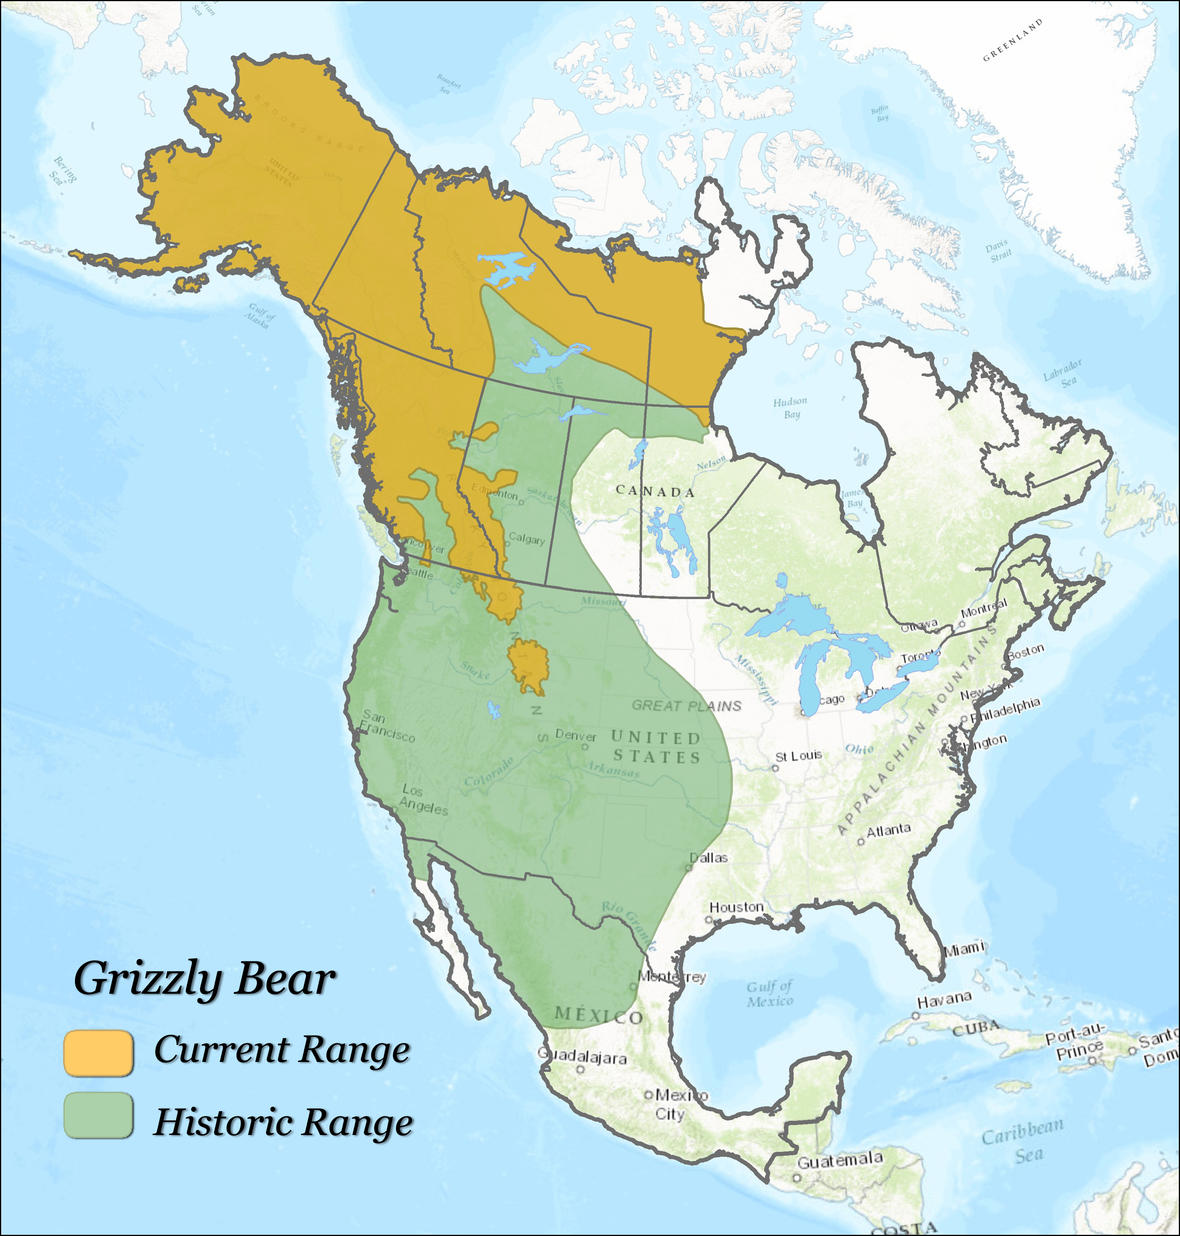 Grizzly bear range